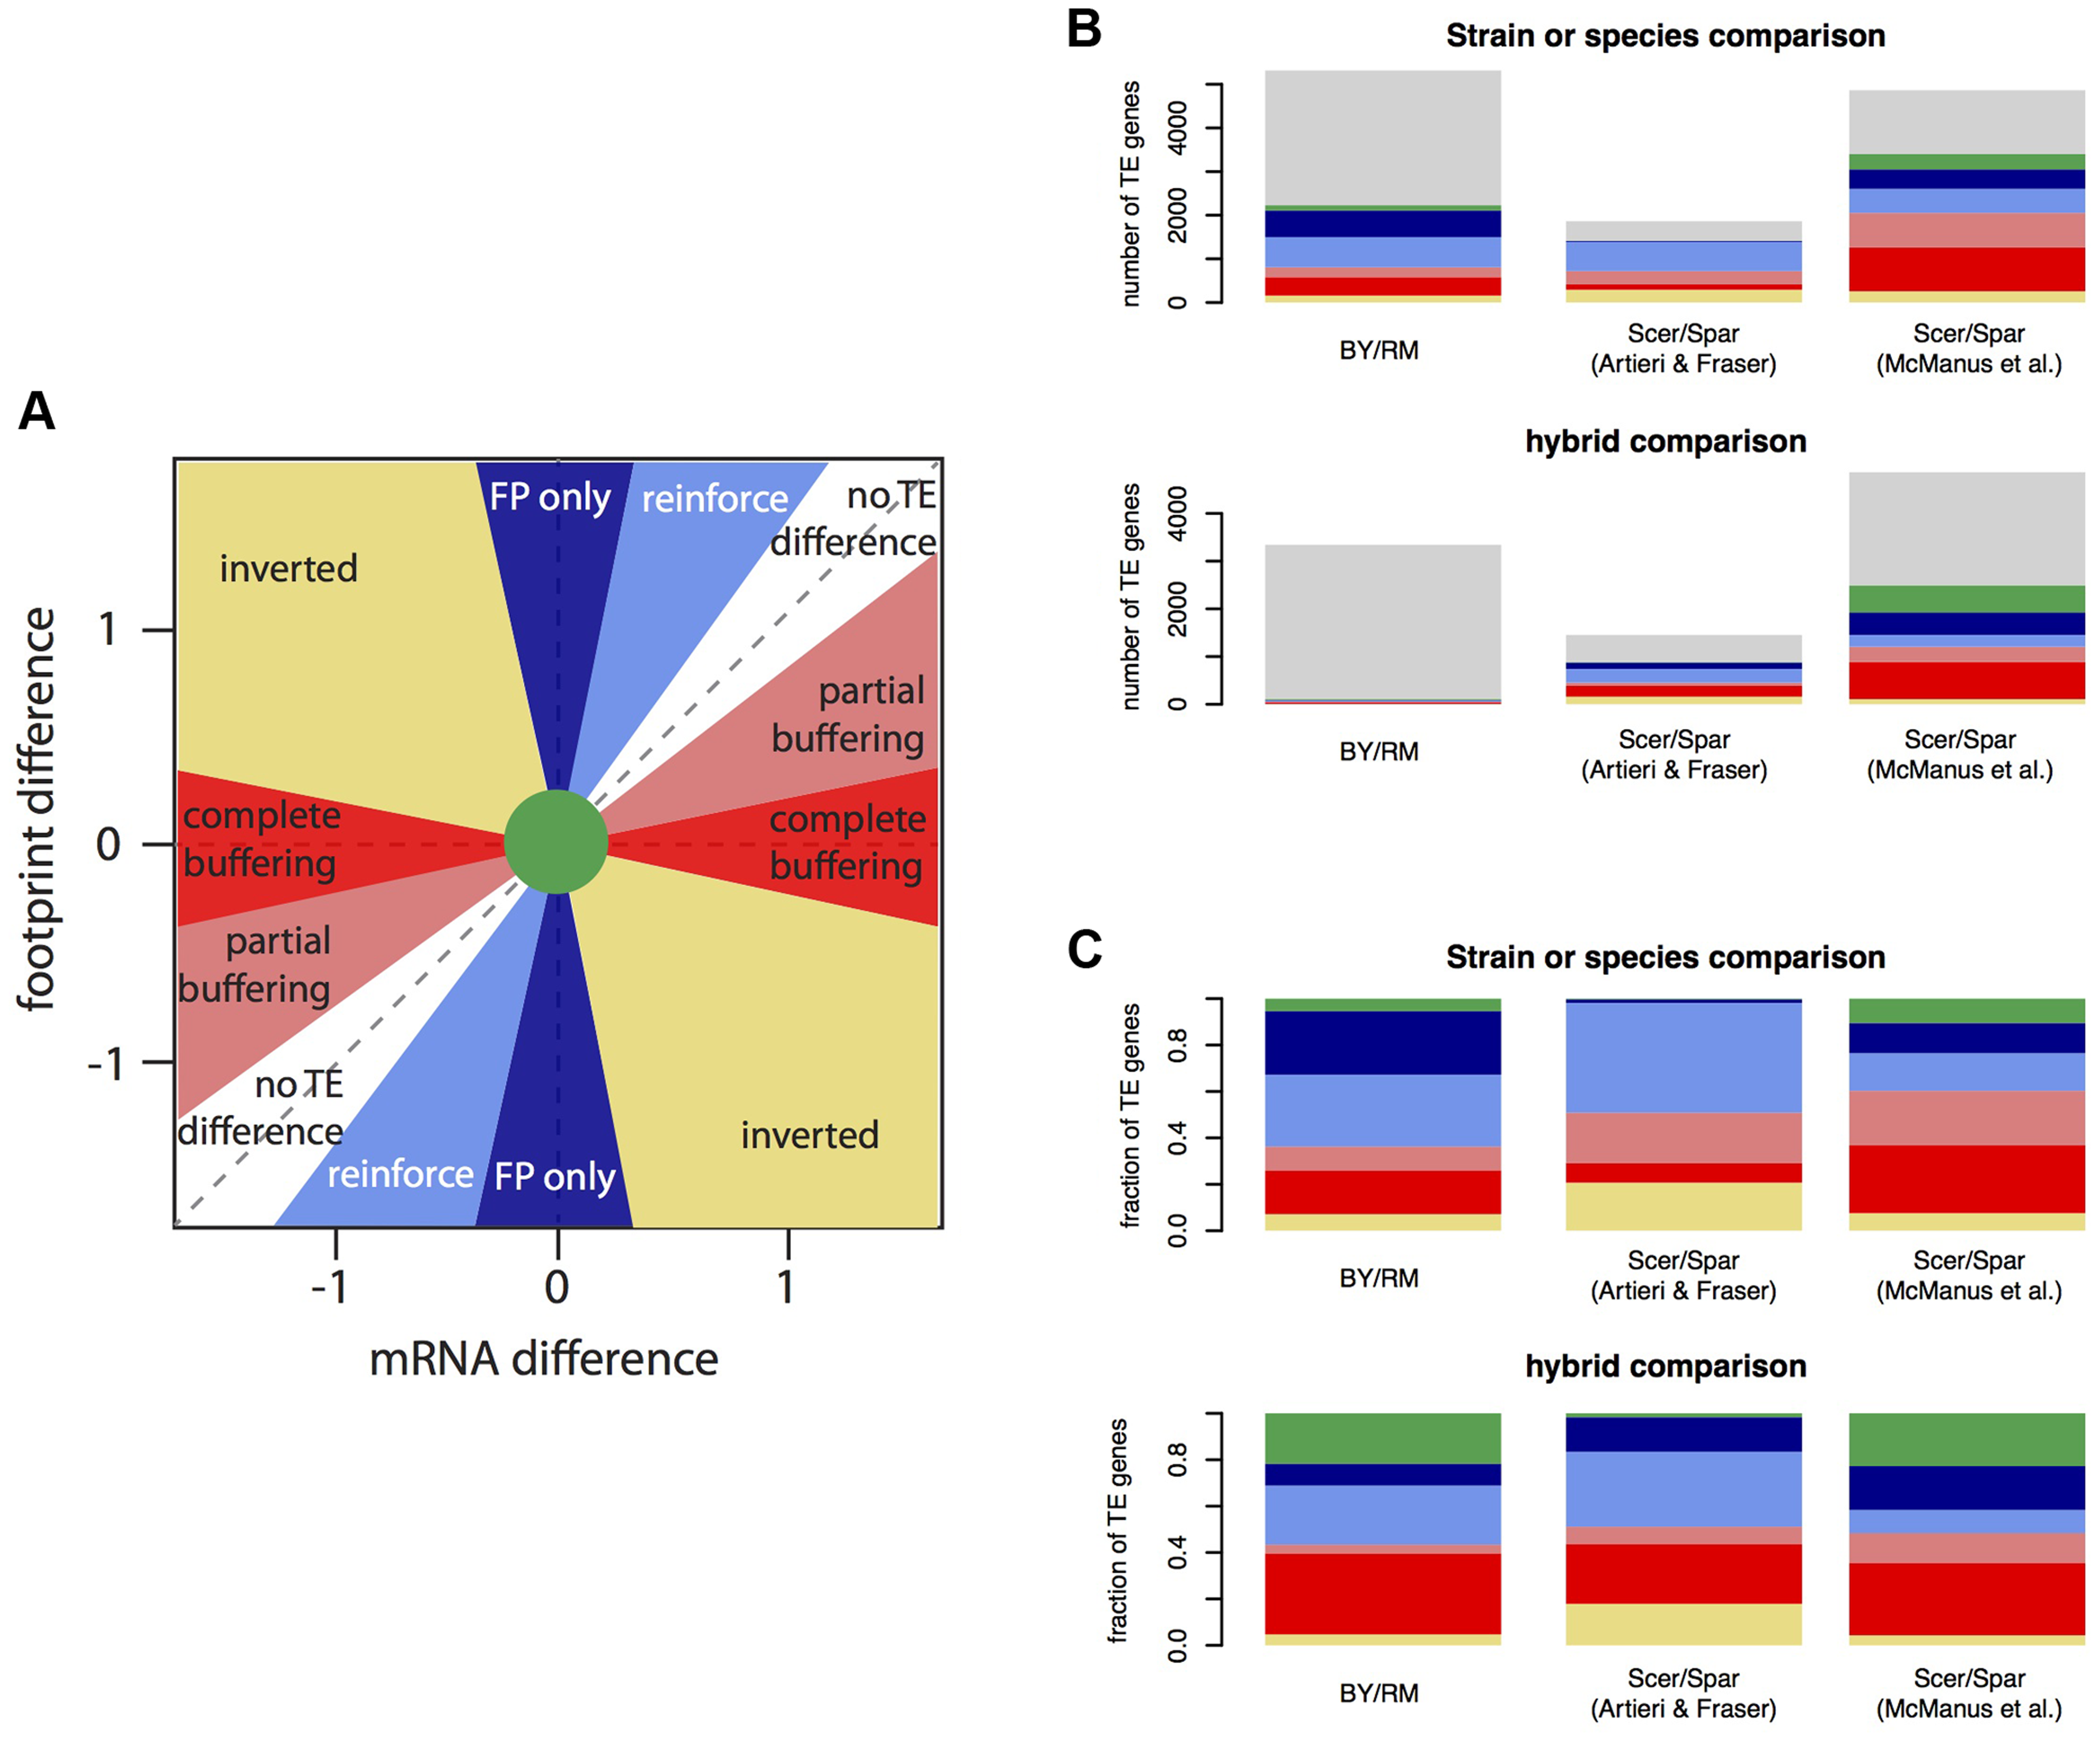 Relationship between mRNA differences and footprint differences within and between species.